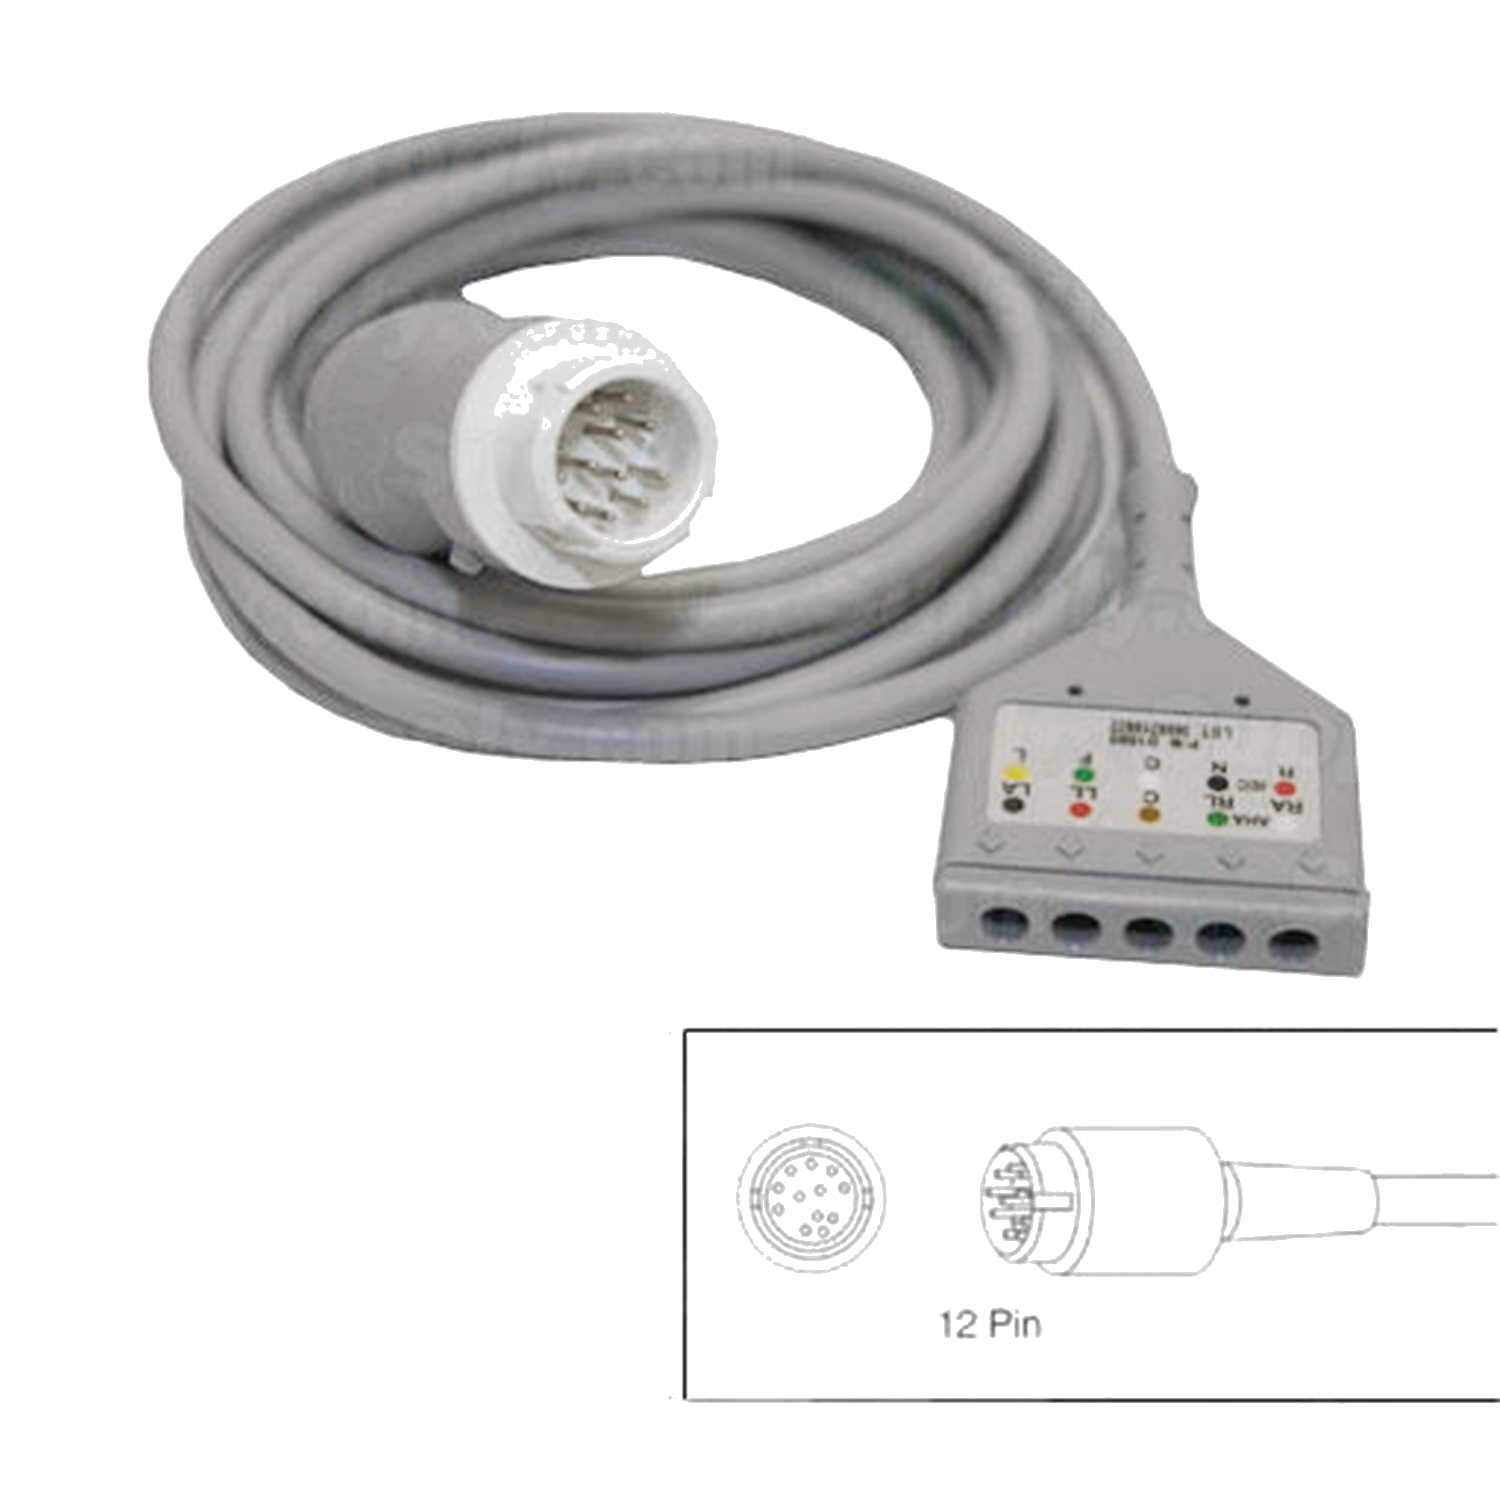 5-Lead Patient Cable for Hewlett Packard Codemasters and Merlin Monitors w/12 Pin Connectors